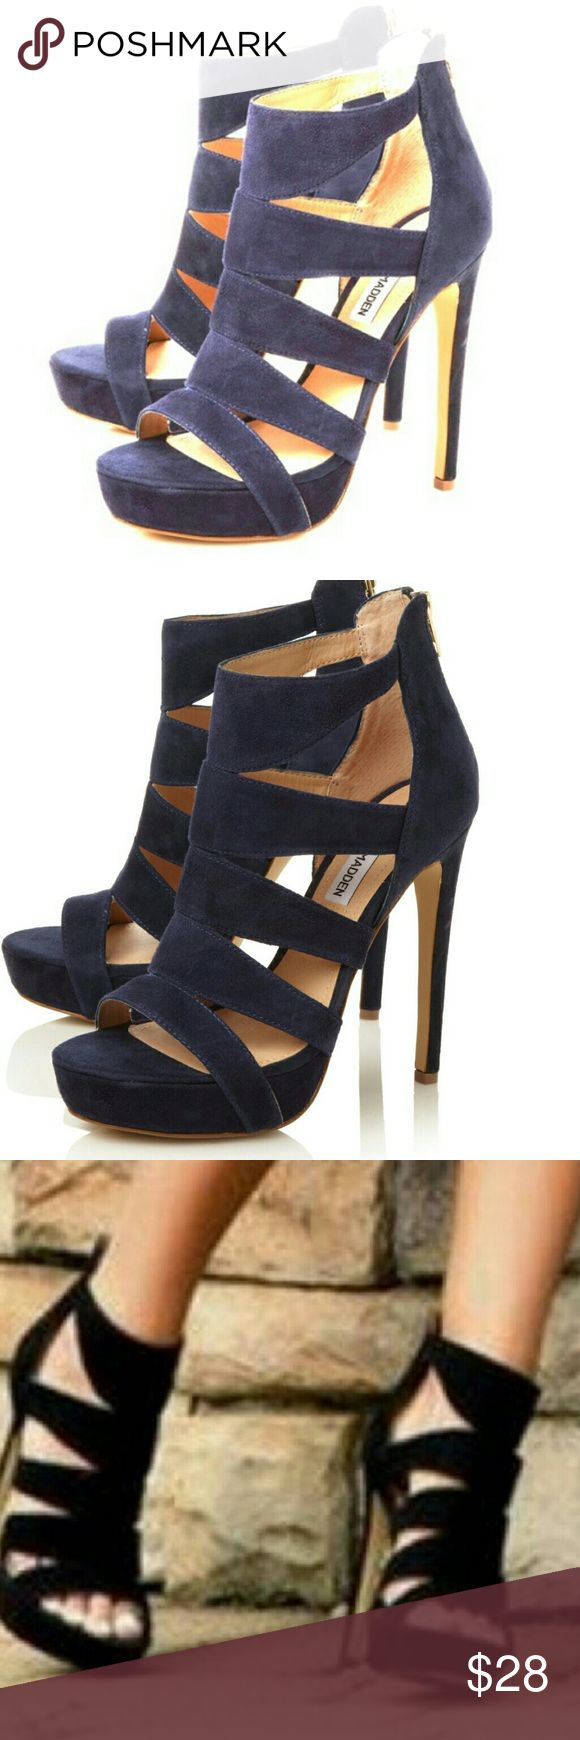 Steve Madden Caged Navy Heels Steve Madden Spycee suede strappy heels. Capture everyone's attention with its thick straps, back zipper and sky-high stiletto heel. Worn only once! Excellent condition! Get it now for Spring & Summer b4 I change my mind n keep! Steve Madden Shoes Heels